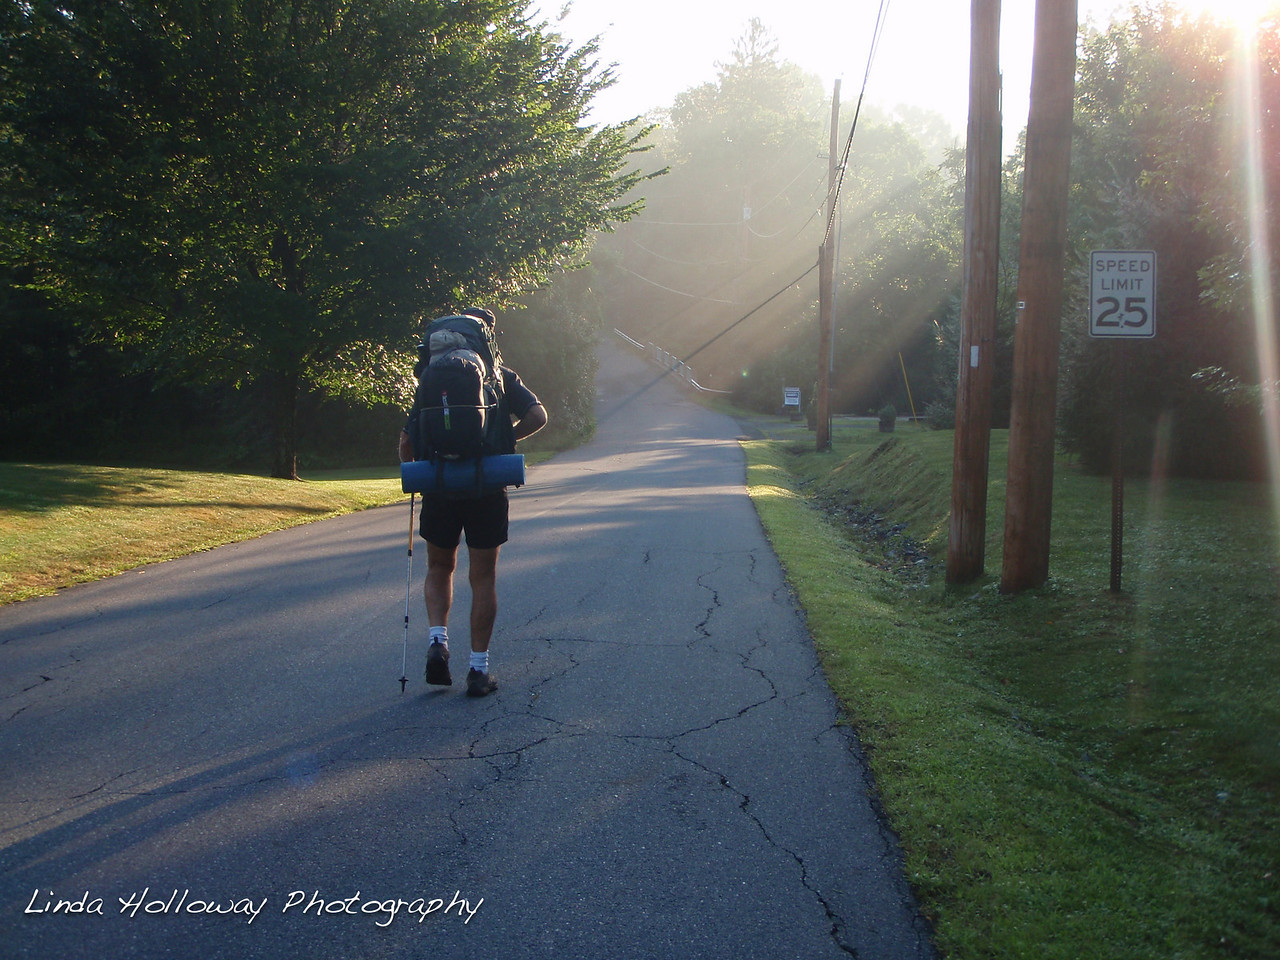 We started walking down the road to Hanover, New Hampshire.